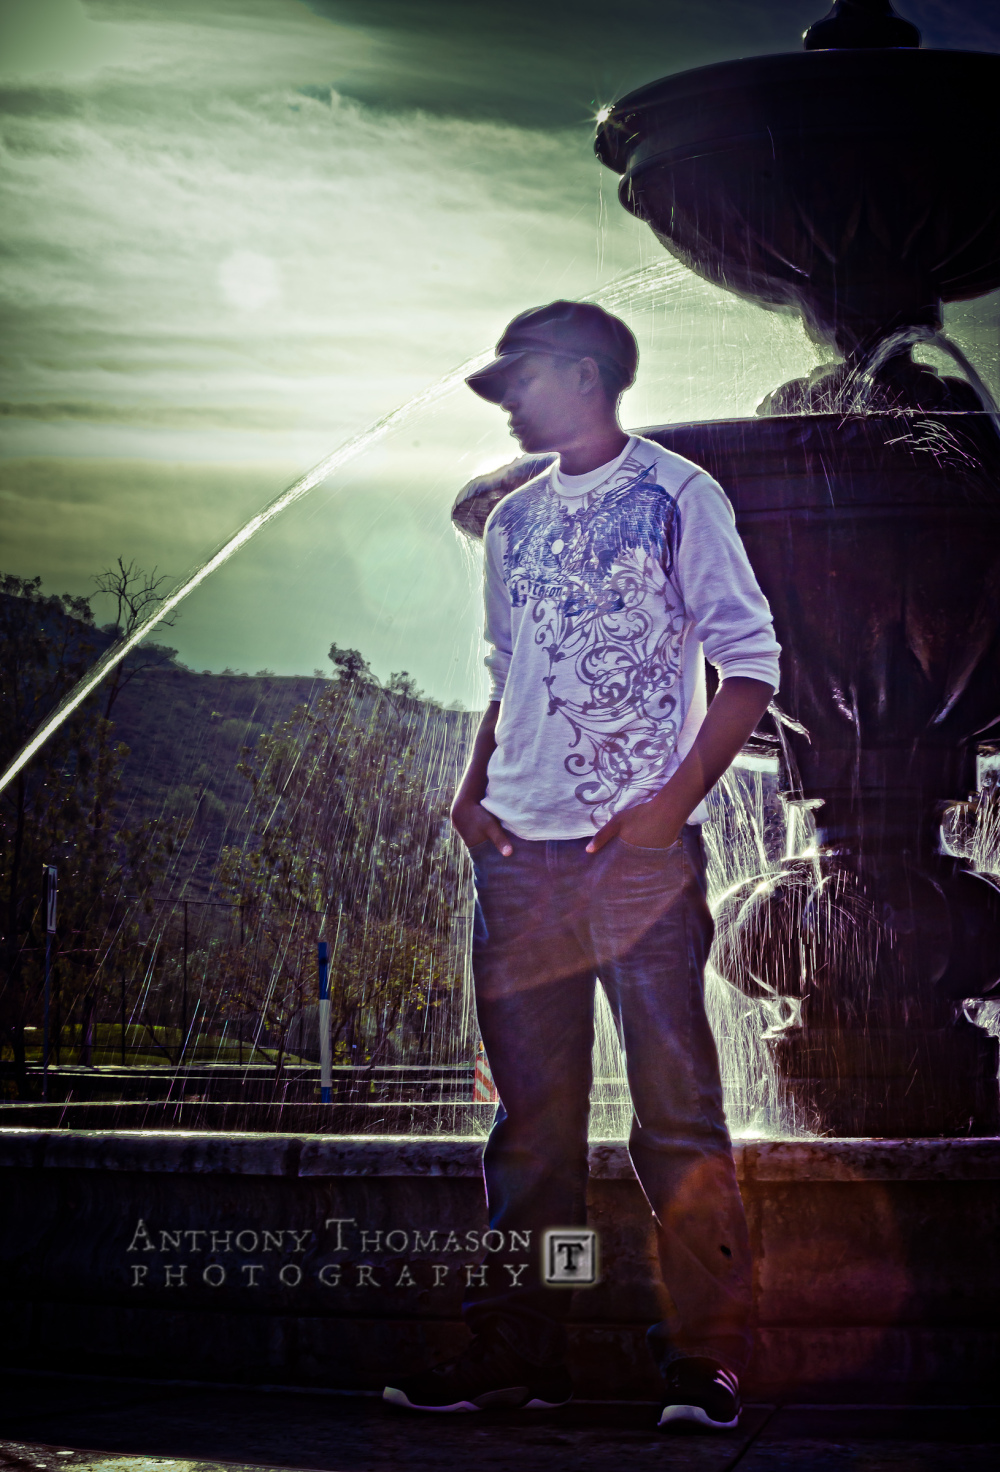 Playing with lens flare and a fountain